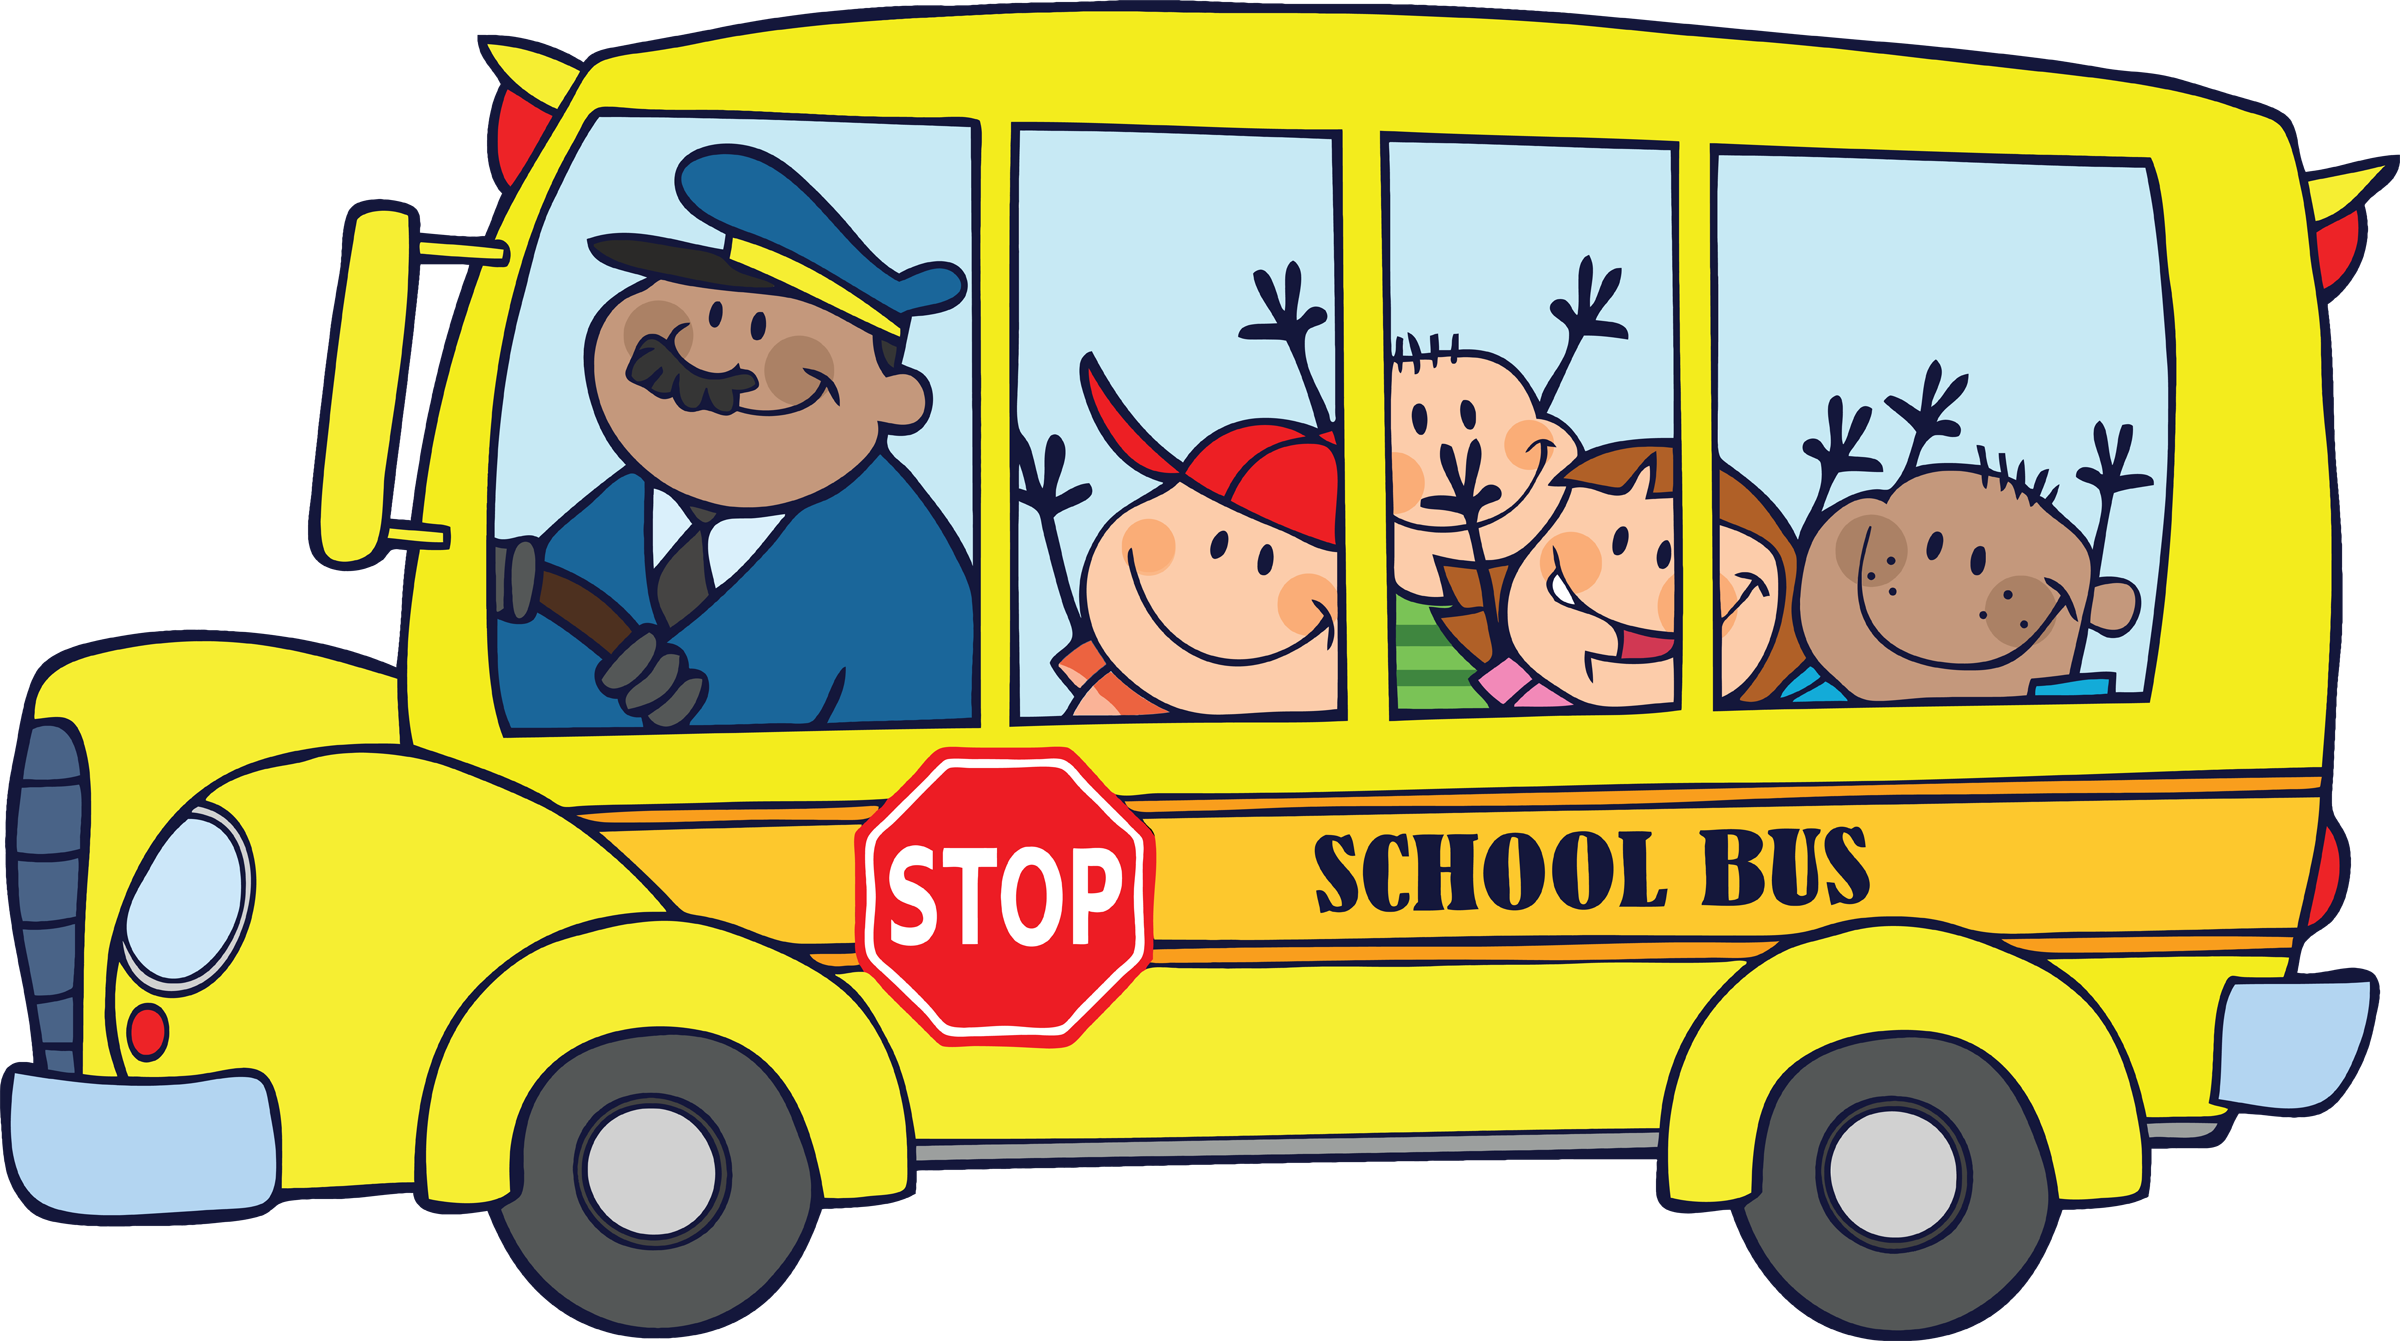 Cartoon image of school clipart images gallery for free.